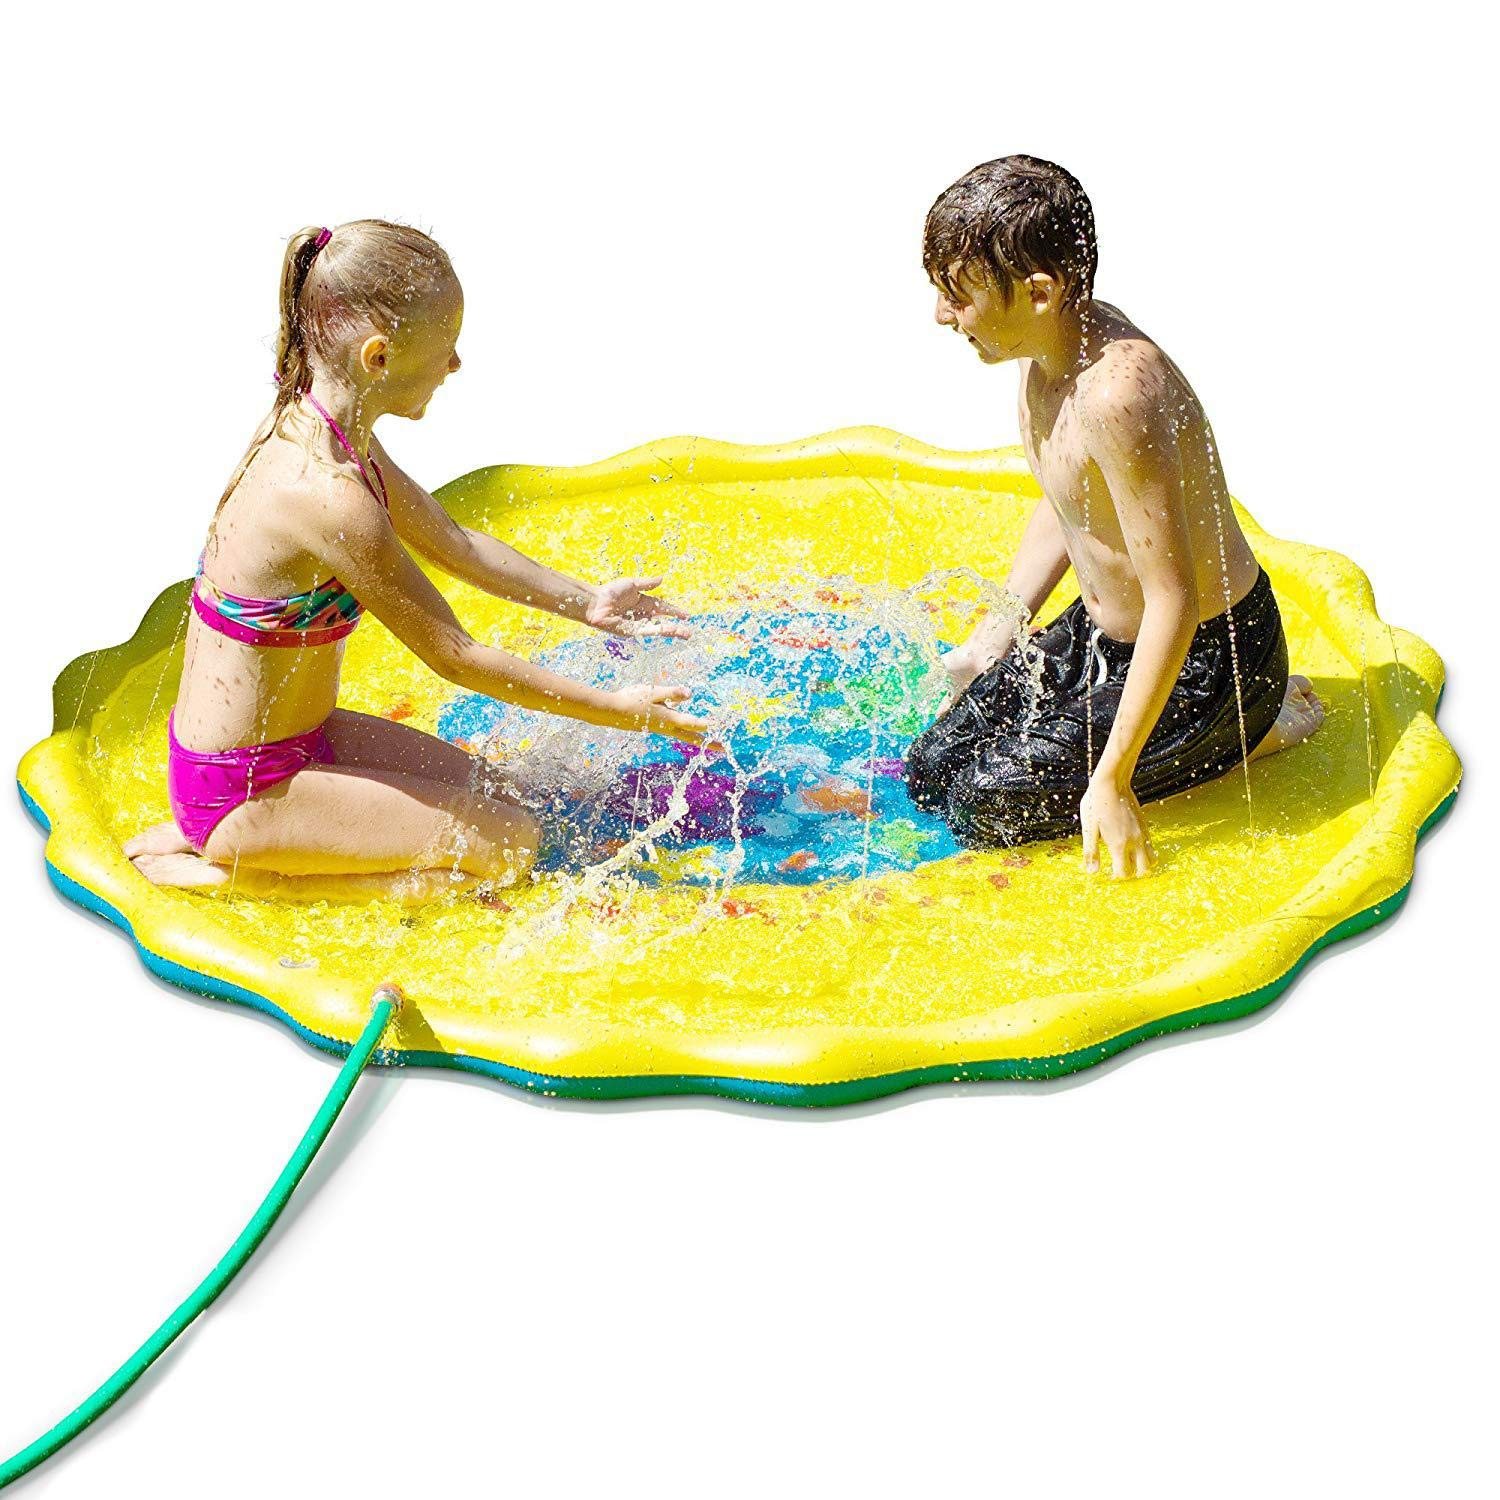 PinShang 170CM Diameter Kids Water Spraying Game Mat Toy by PinShang (Image #3)